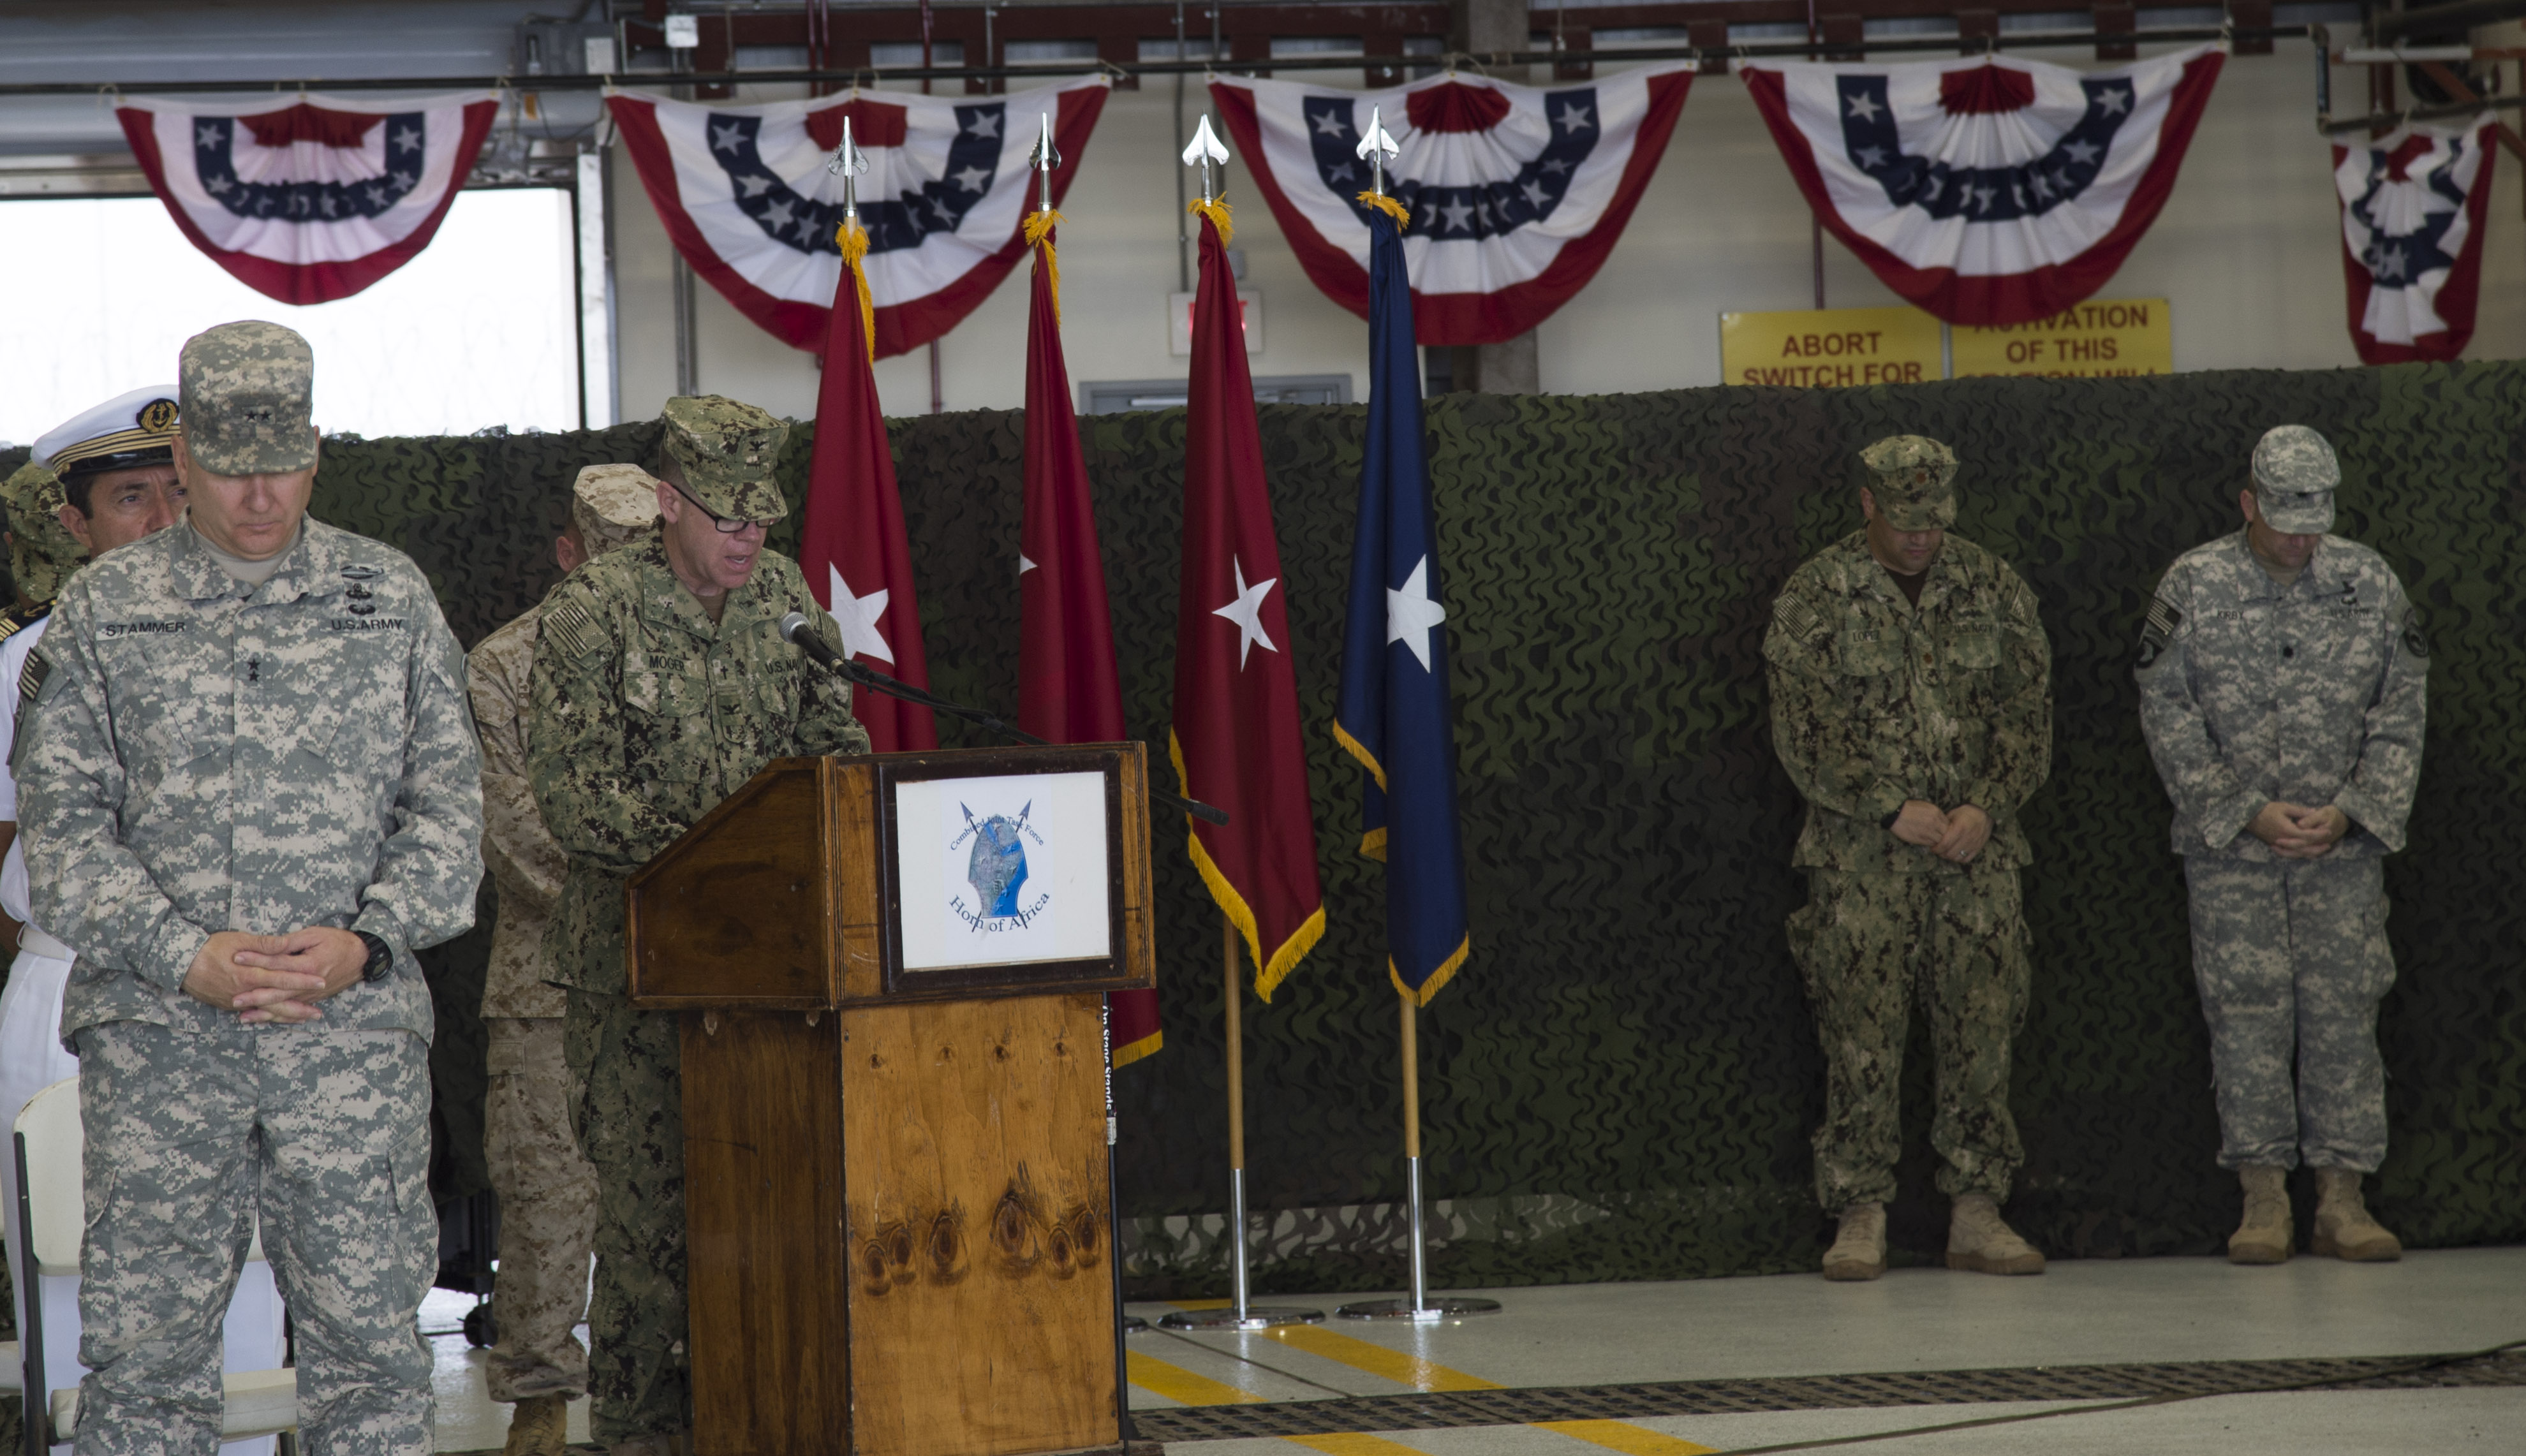 U.S. Army Chaplain Capt. J. Travis Moger, Combined Joint Task Force-Horn of Africa director of religious affairs, gives an invocation at the beginning of the CJTF-HOA change of command ceremony April 13, 2016, at Camp Lemonnier, Djibouti. Brig. Gen. Kurt Sonntag assumed command of CJTF-HOA after serving as commanding general for the Special Operations Command South at Homestead Air Reserve Base, Fla. (U.S. Air Force photo by Staff Sgt. Eric Summers Jr.)